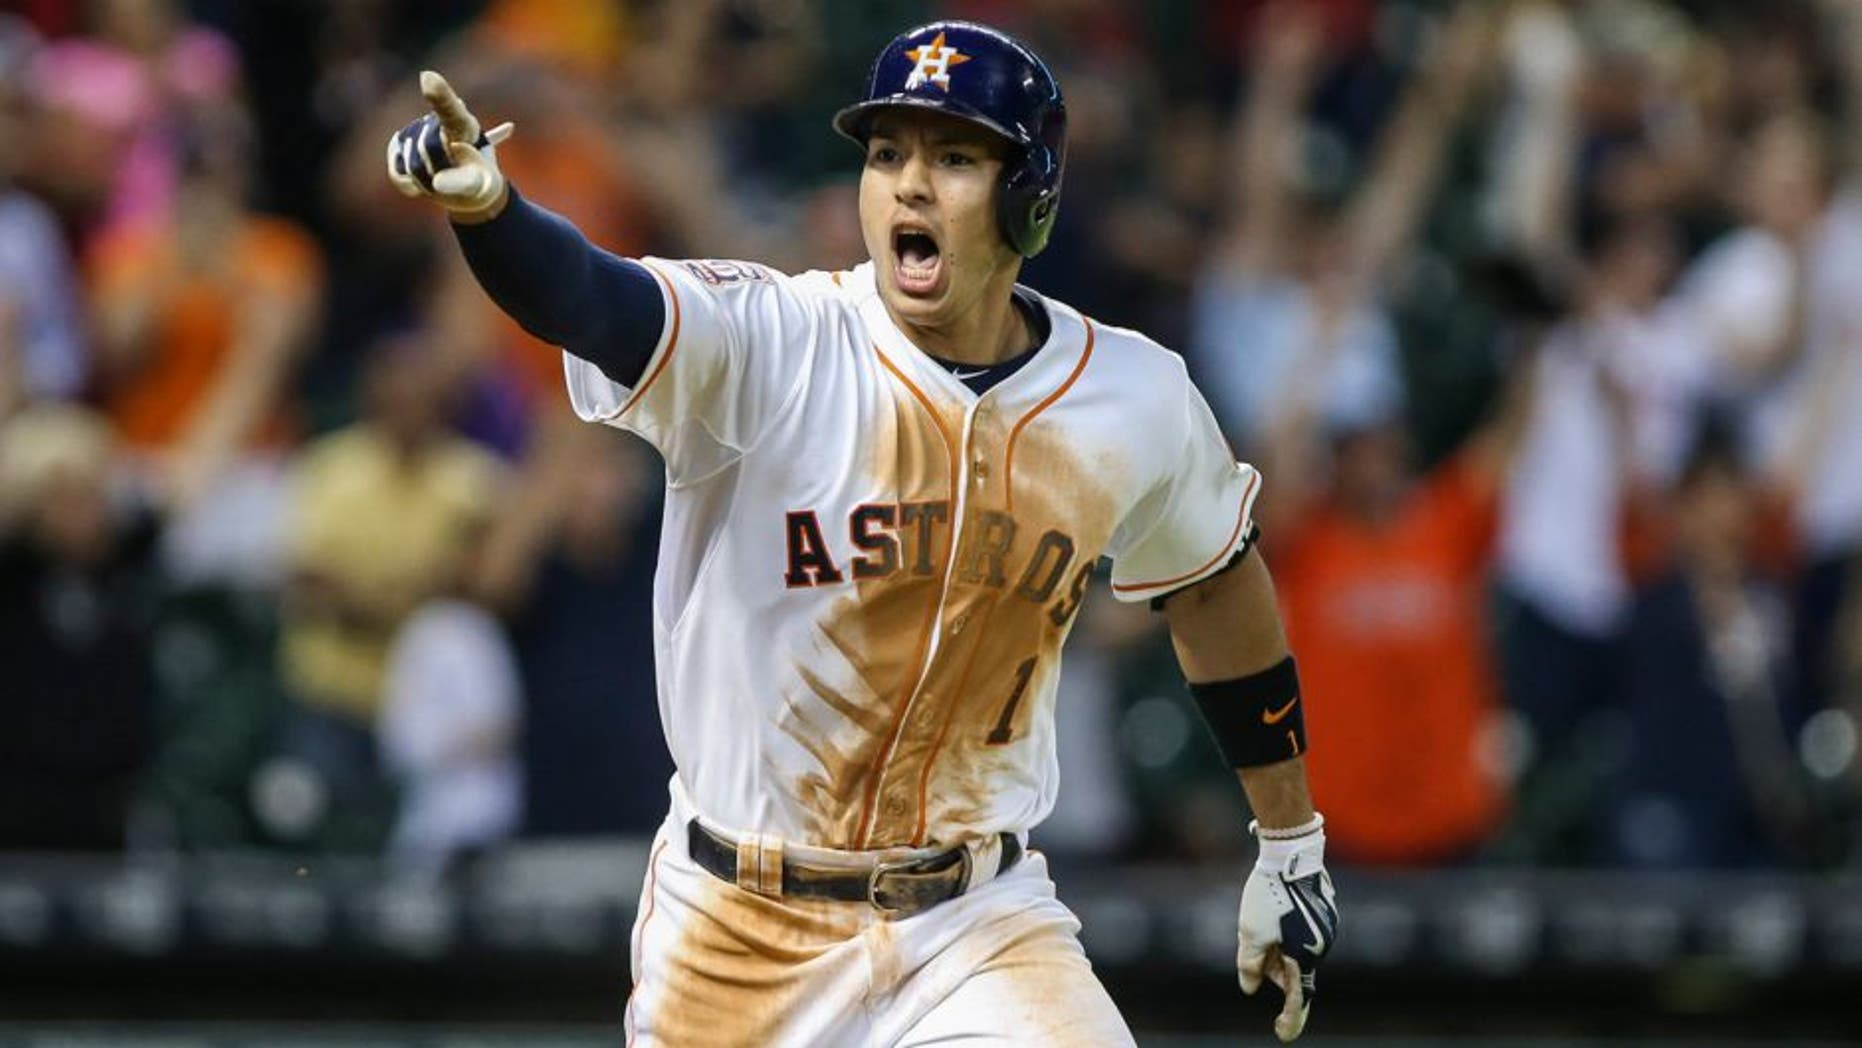 Aug 19, 2015; Houston, TX, USA; Houston Astros shortstop Carlos Correa (1) gets a walk off game-winning RBI single during the thirteenth inning as the Astros defeated the Tampa Bay Rays 3-2 at Minute Maid Park. Mandatory Credit: Troy Taormina-USA TODAY Sports